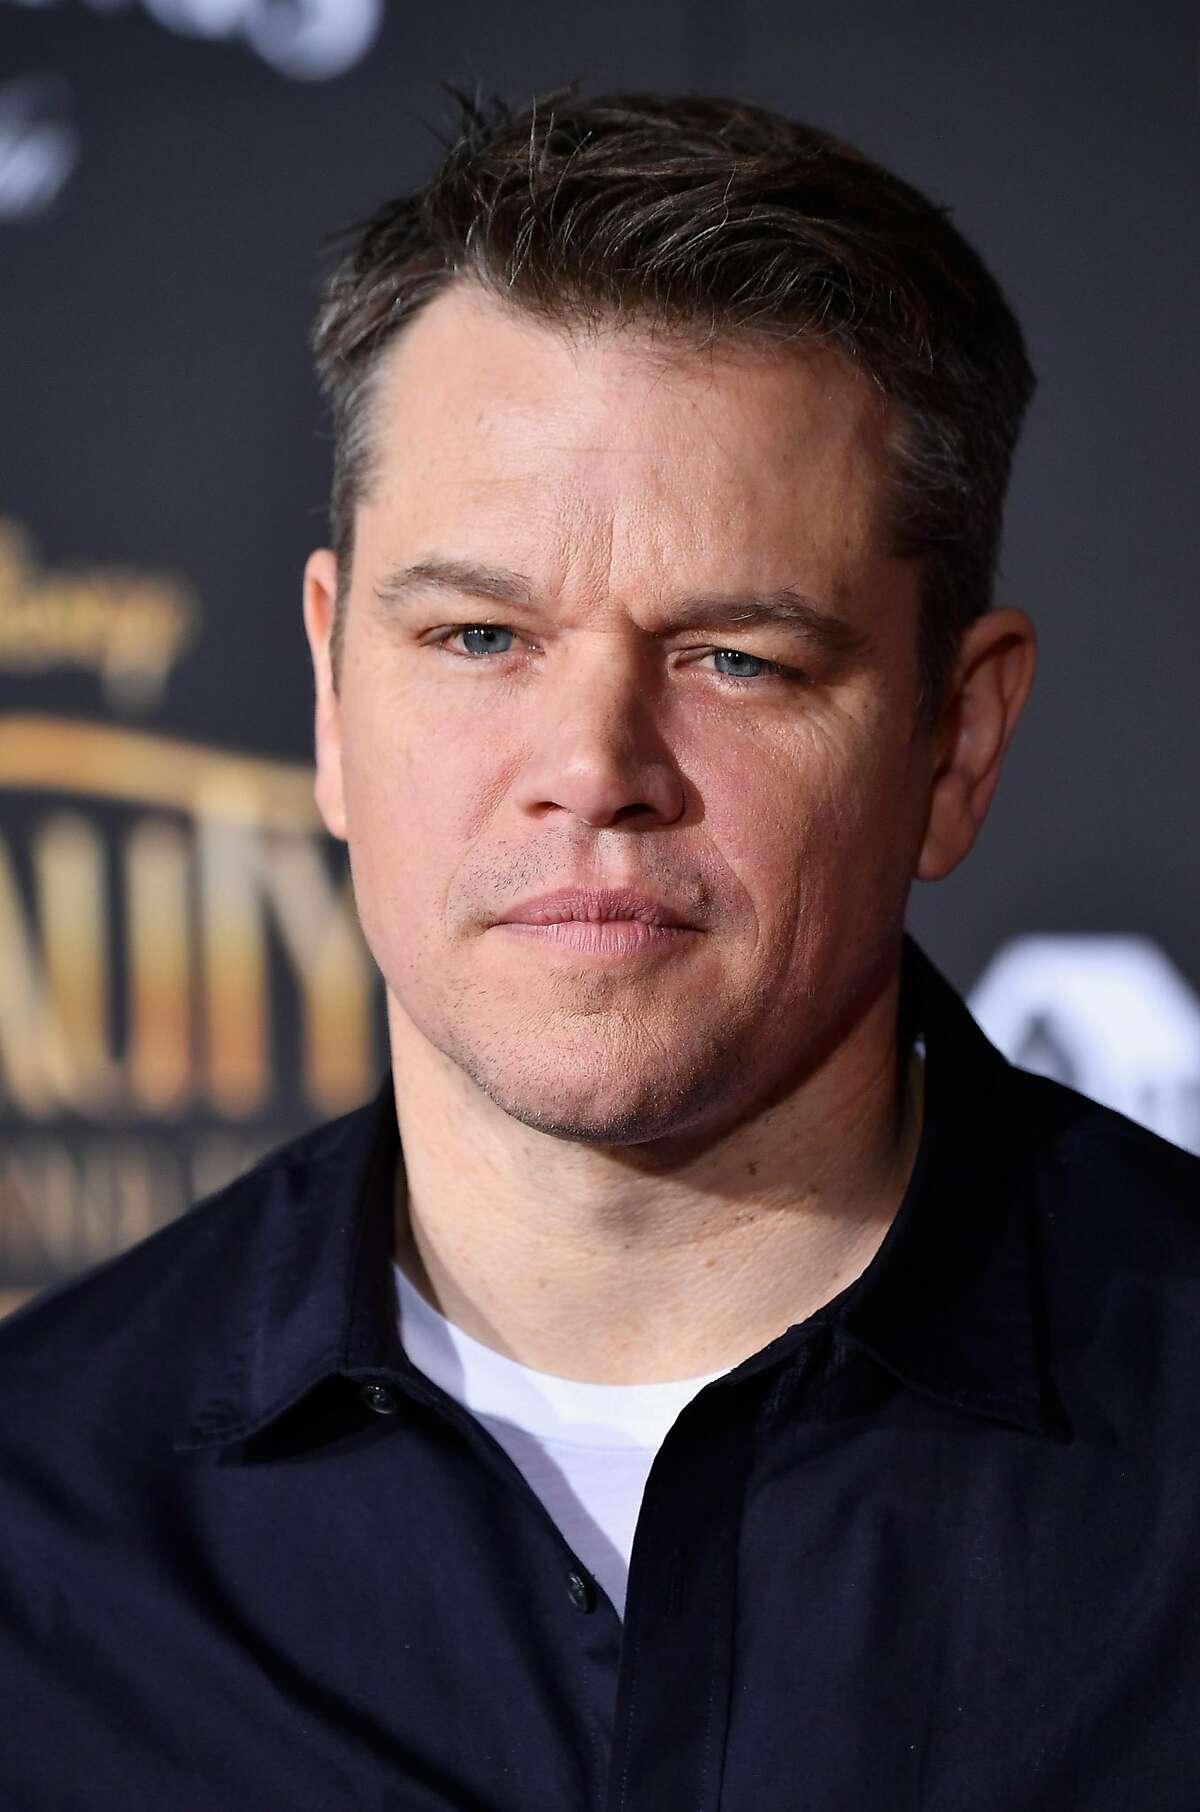 LOS ANGELES, CA - MARCH 02: Actor Matt Damon attends Disney's 'Beauty and the Beast' premiere at El Capitan Theatre on March 2, 2017 in Los Angeles, California. (Photo by Frazer Harrison/Getty Images)